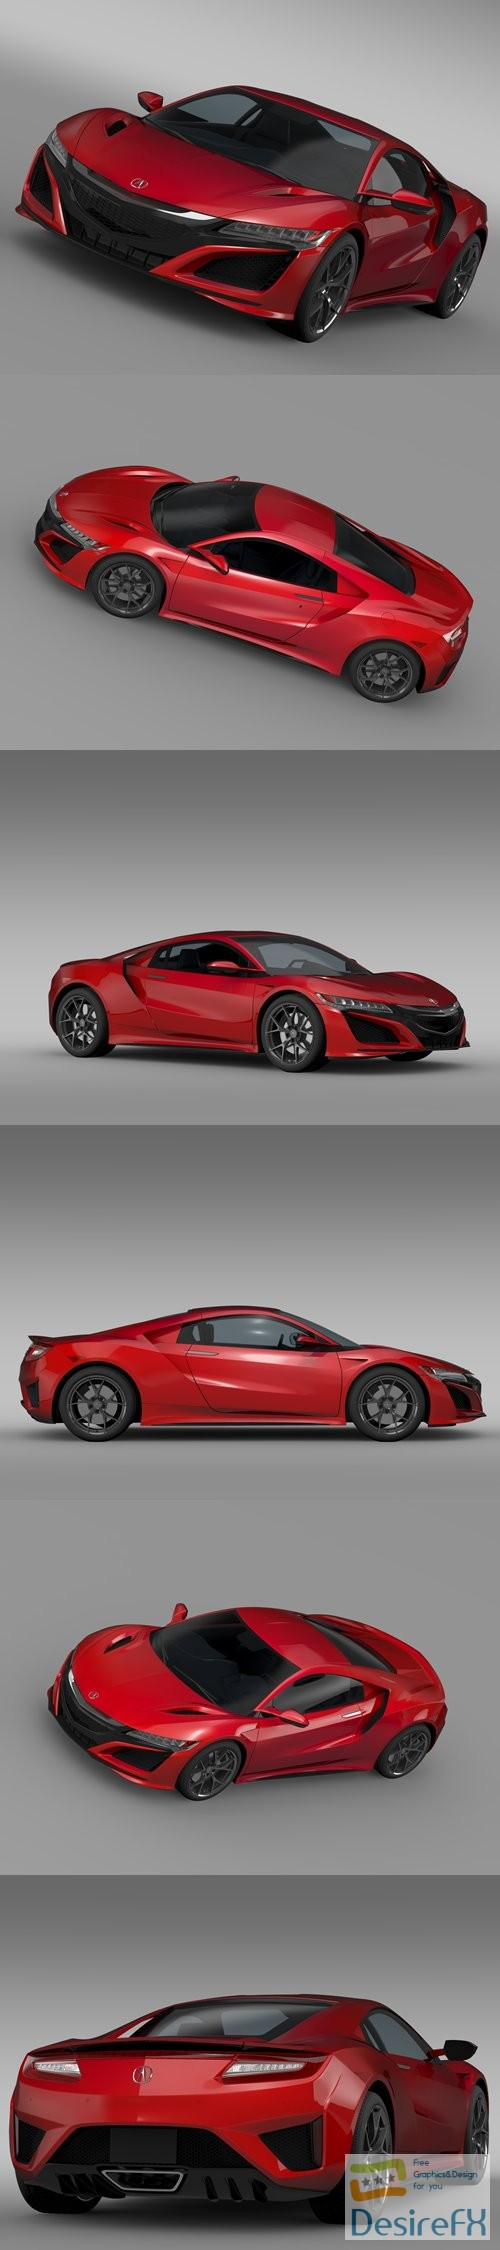 3d-models - Acura NSX 2016 3D Model